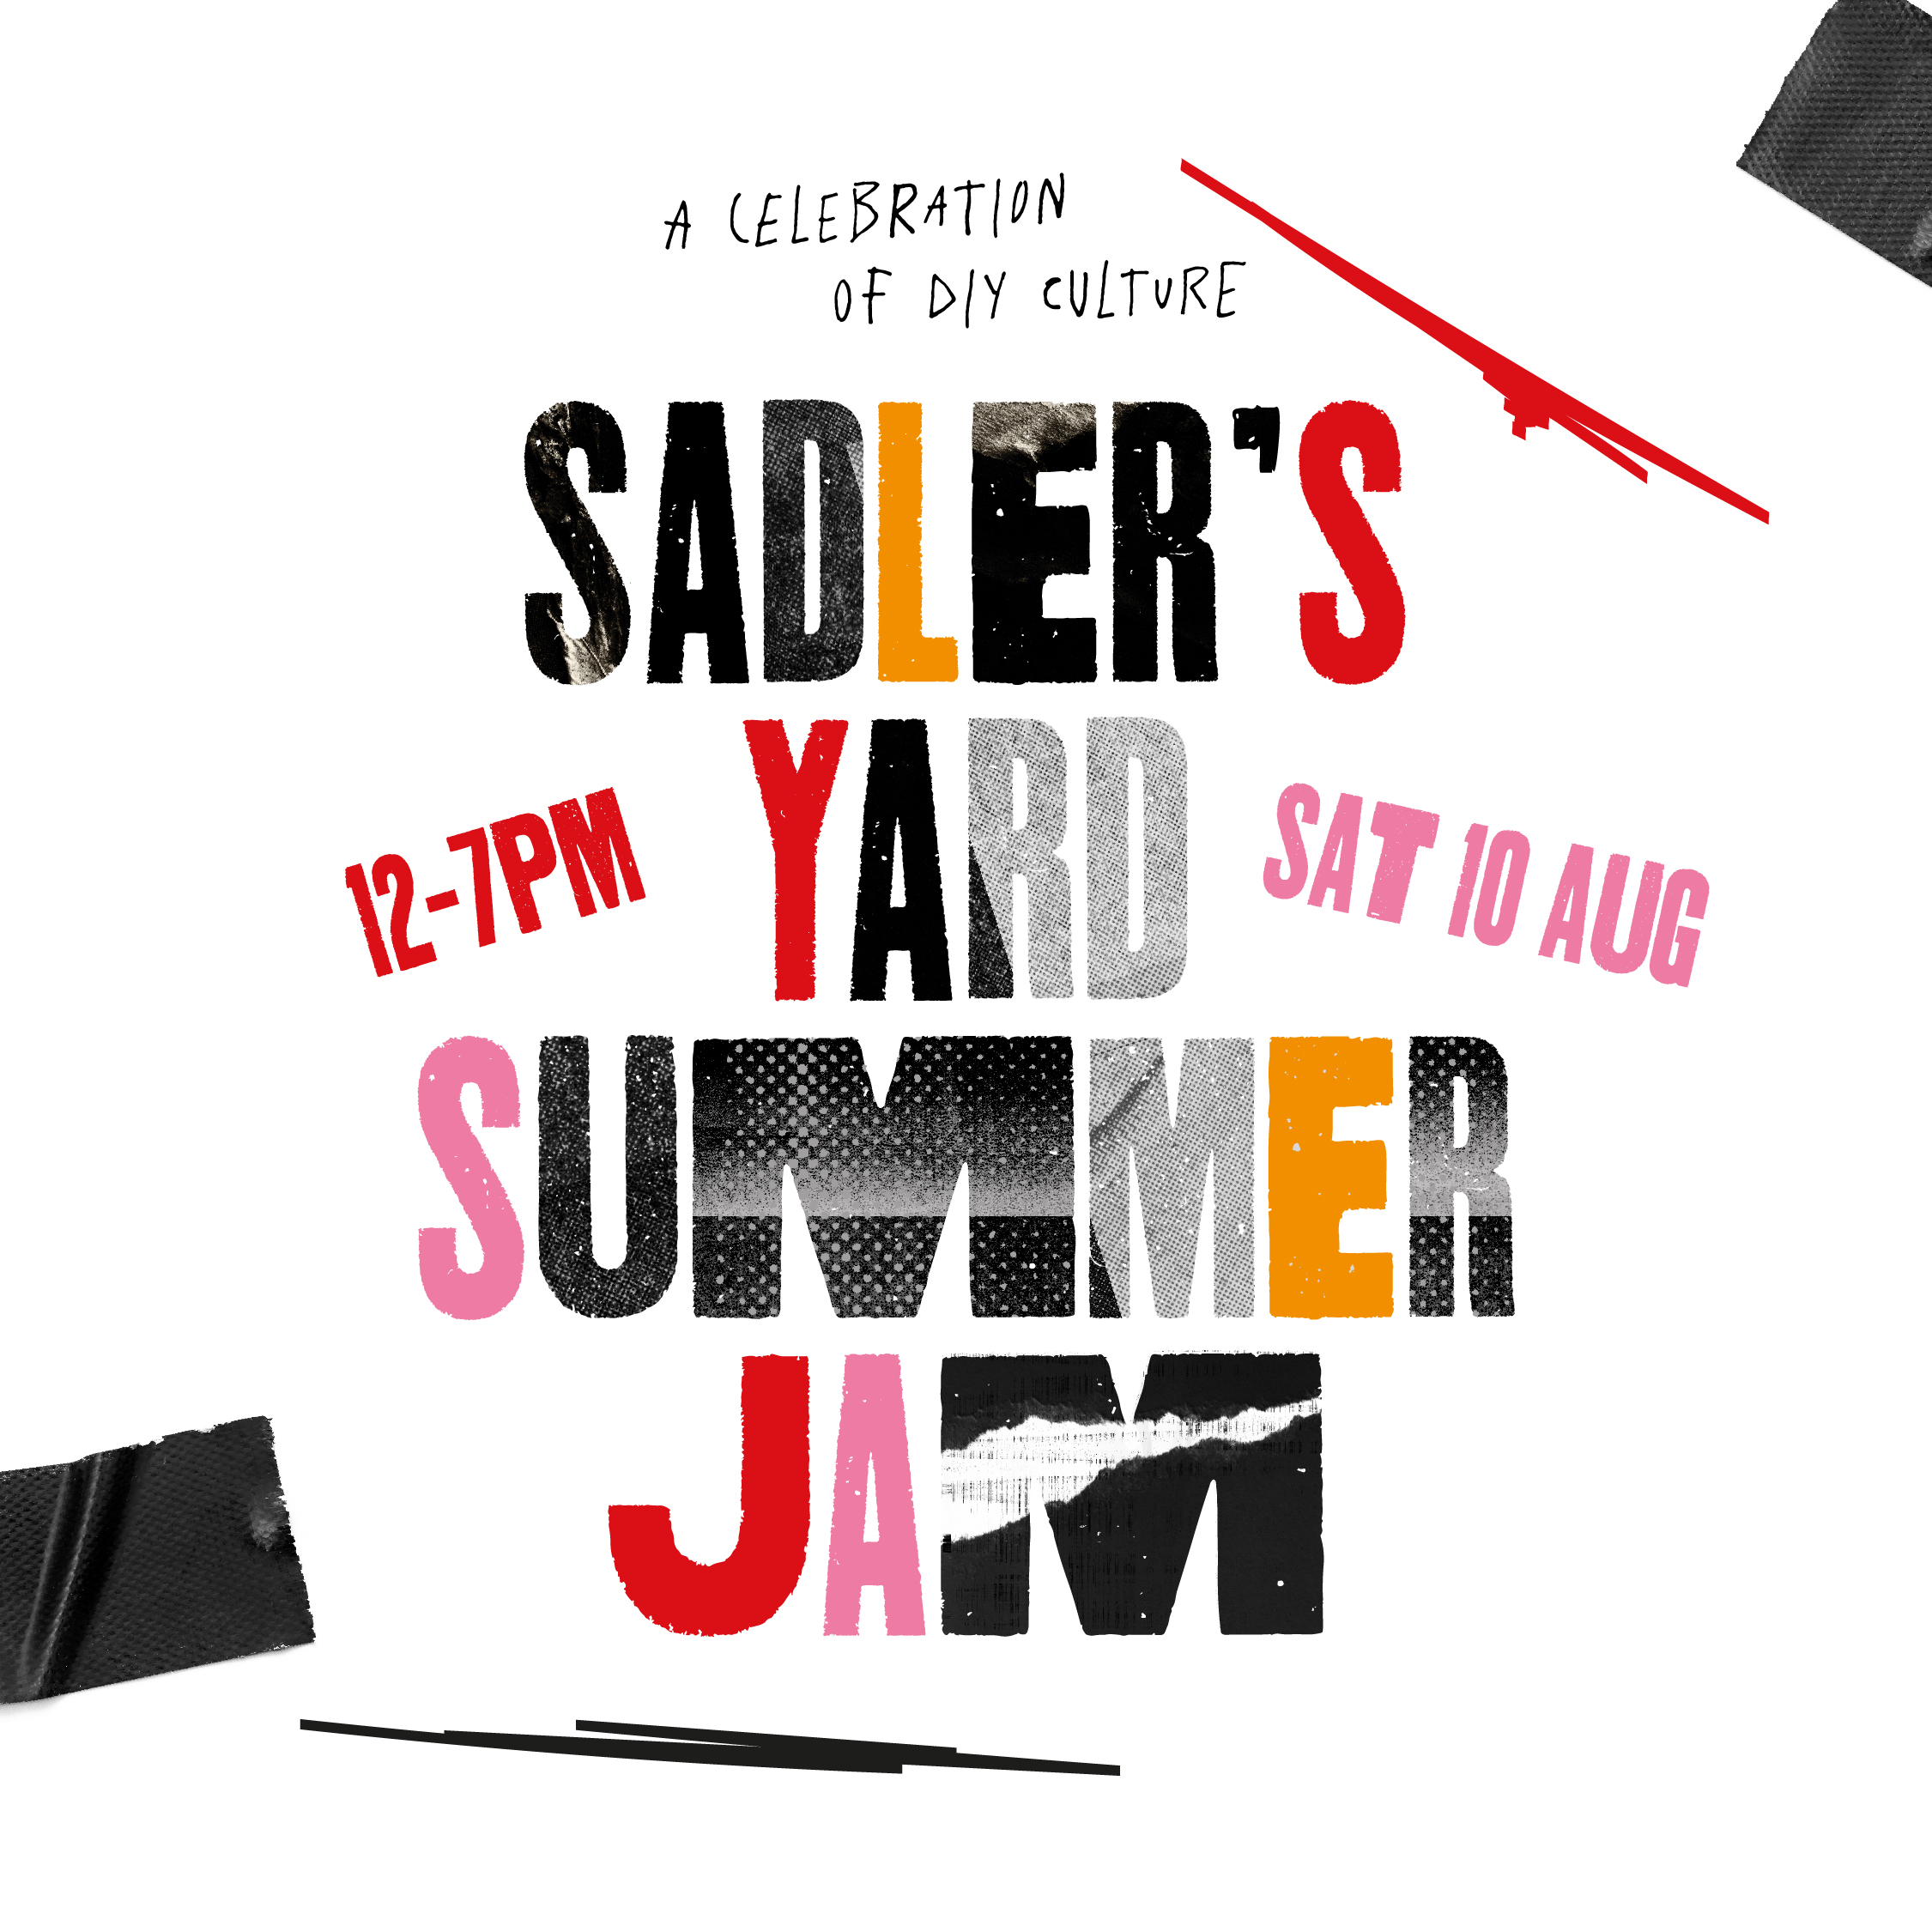 SADLER'S YARD SUMMER JAM 2019 - Saturday 10th August, 12-7pmA celebration of DIY culture.The world is yours for the making.